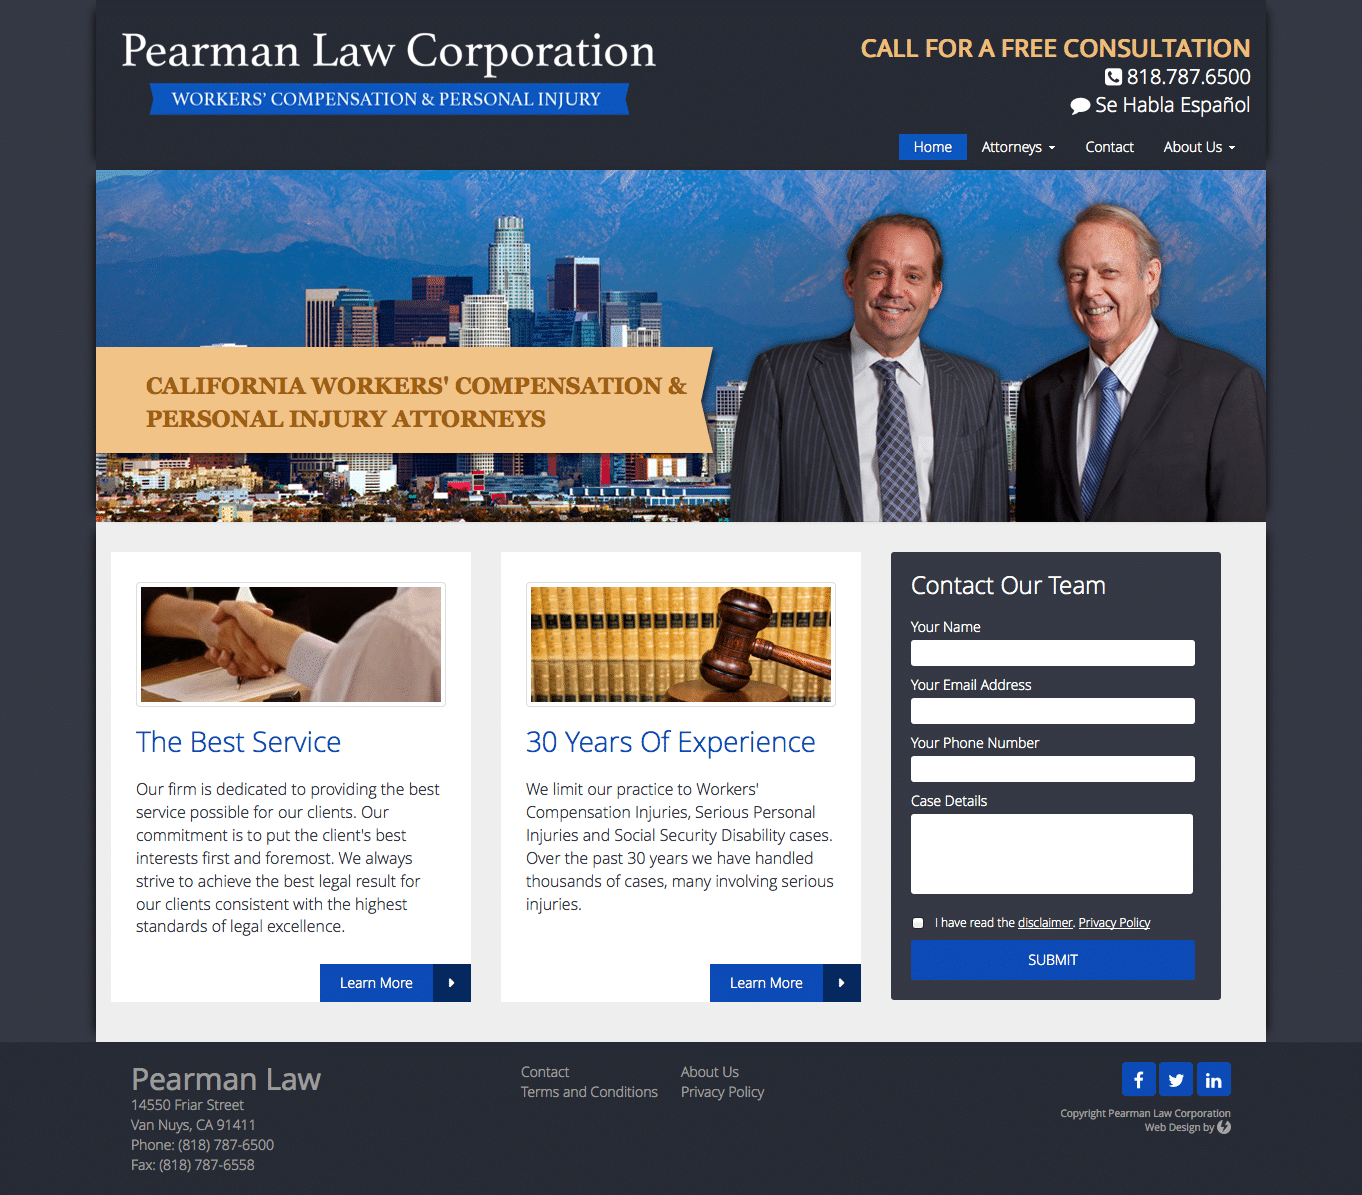 Pearman Law Corporation